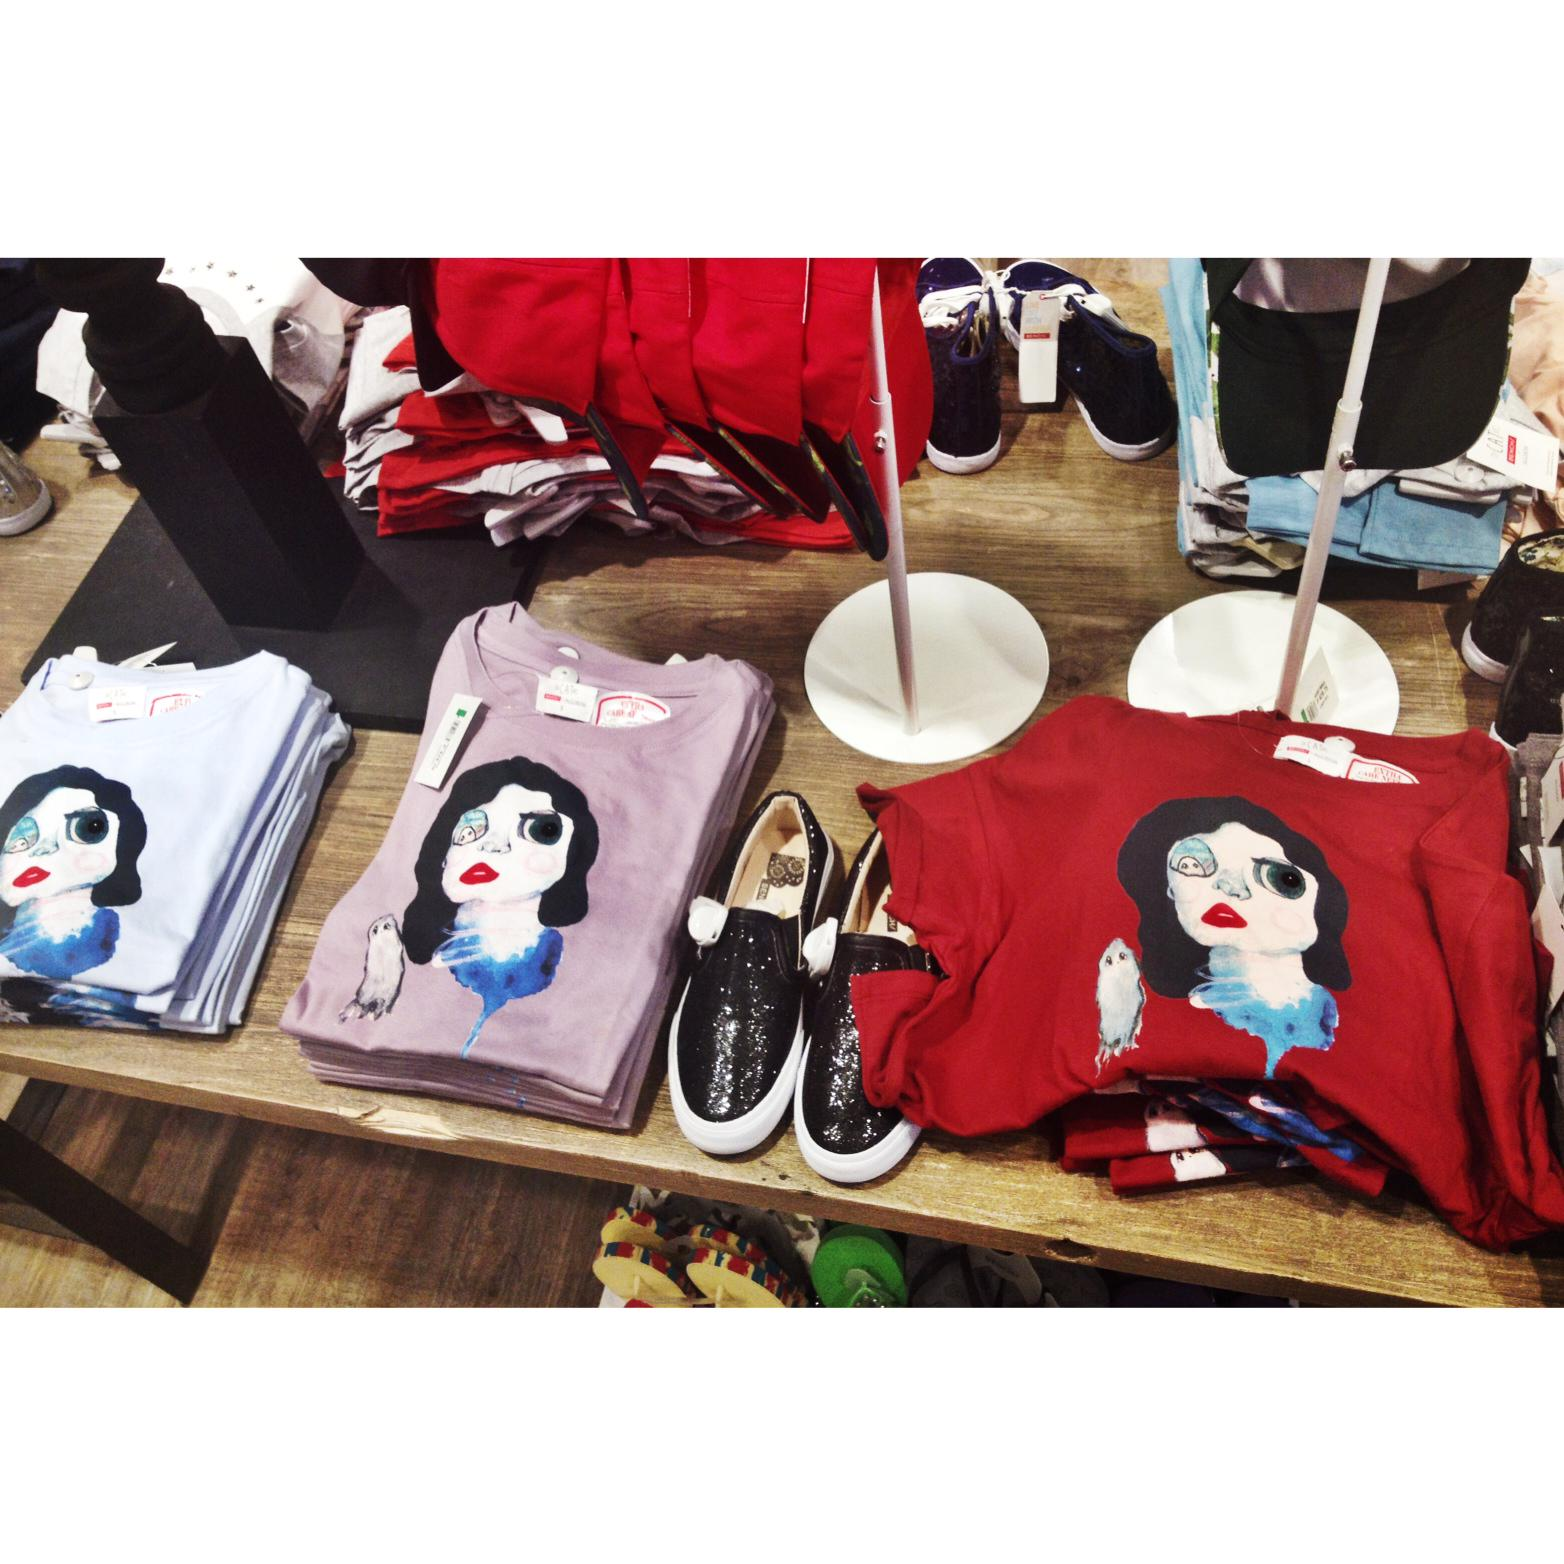 i just went to #bench to see my #CATxBENCH shirts  and i'm SO EXCITED. i love how they turned out! <3 in stores now! http://t.co/sMpigVqHoy